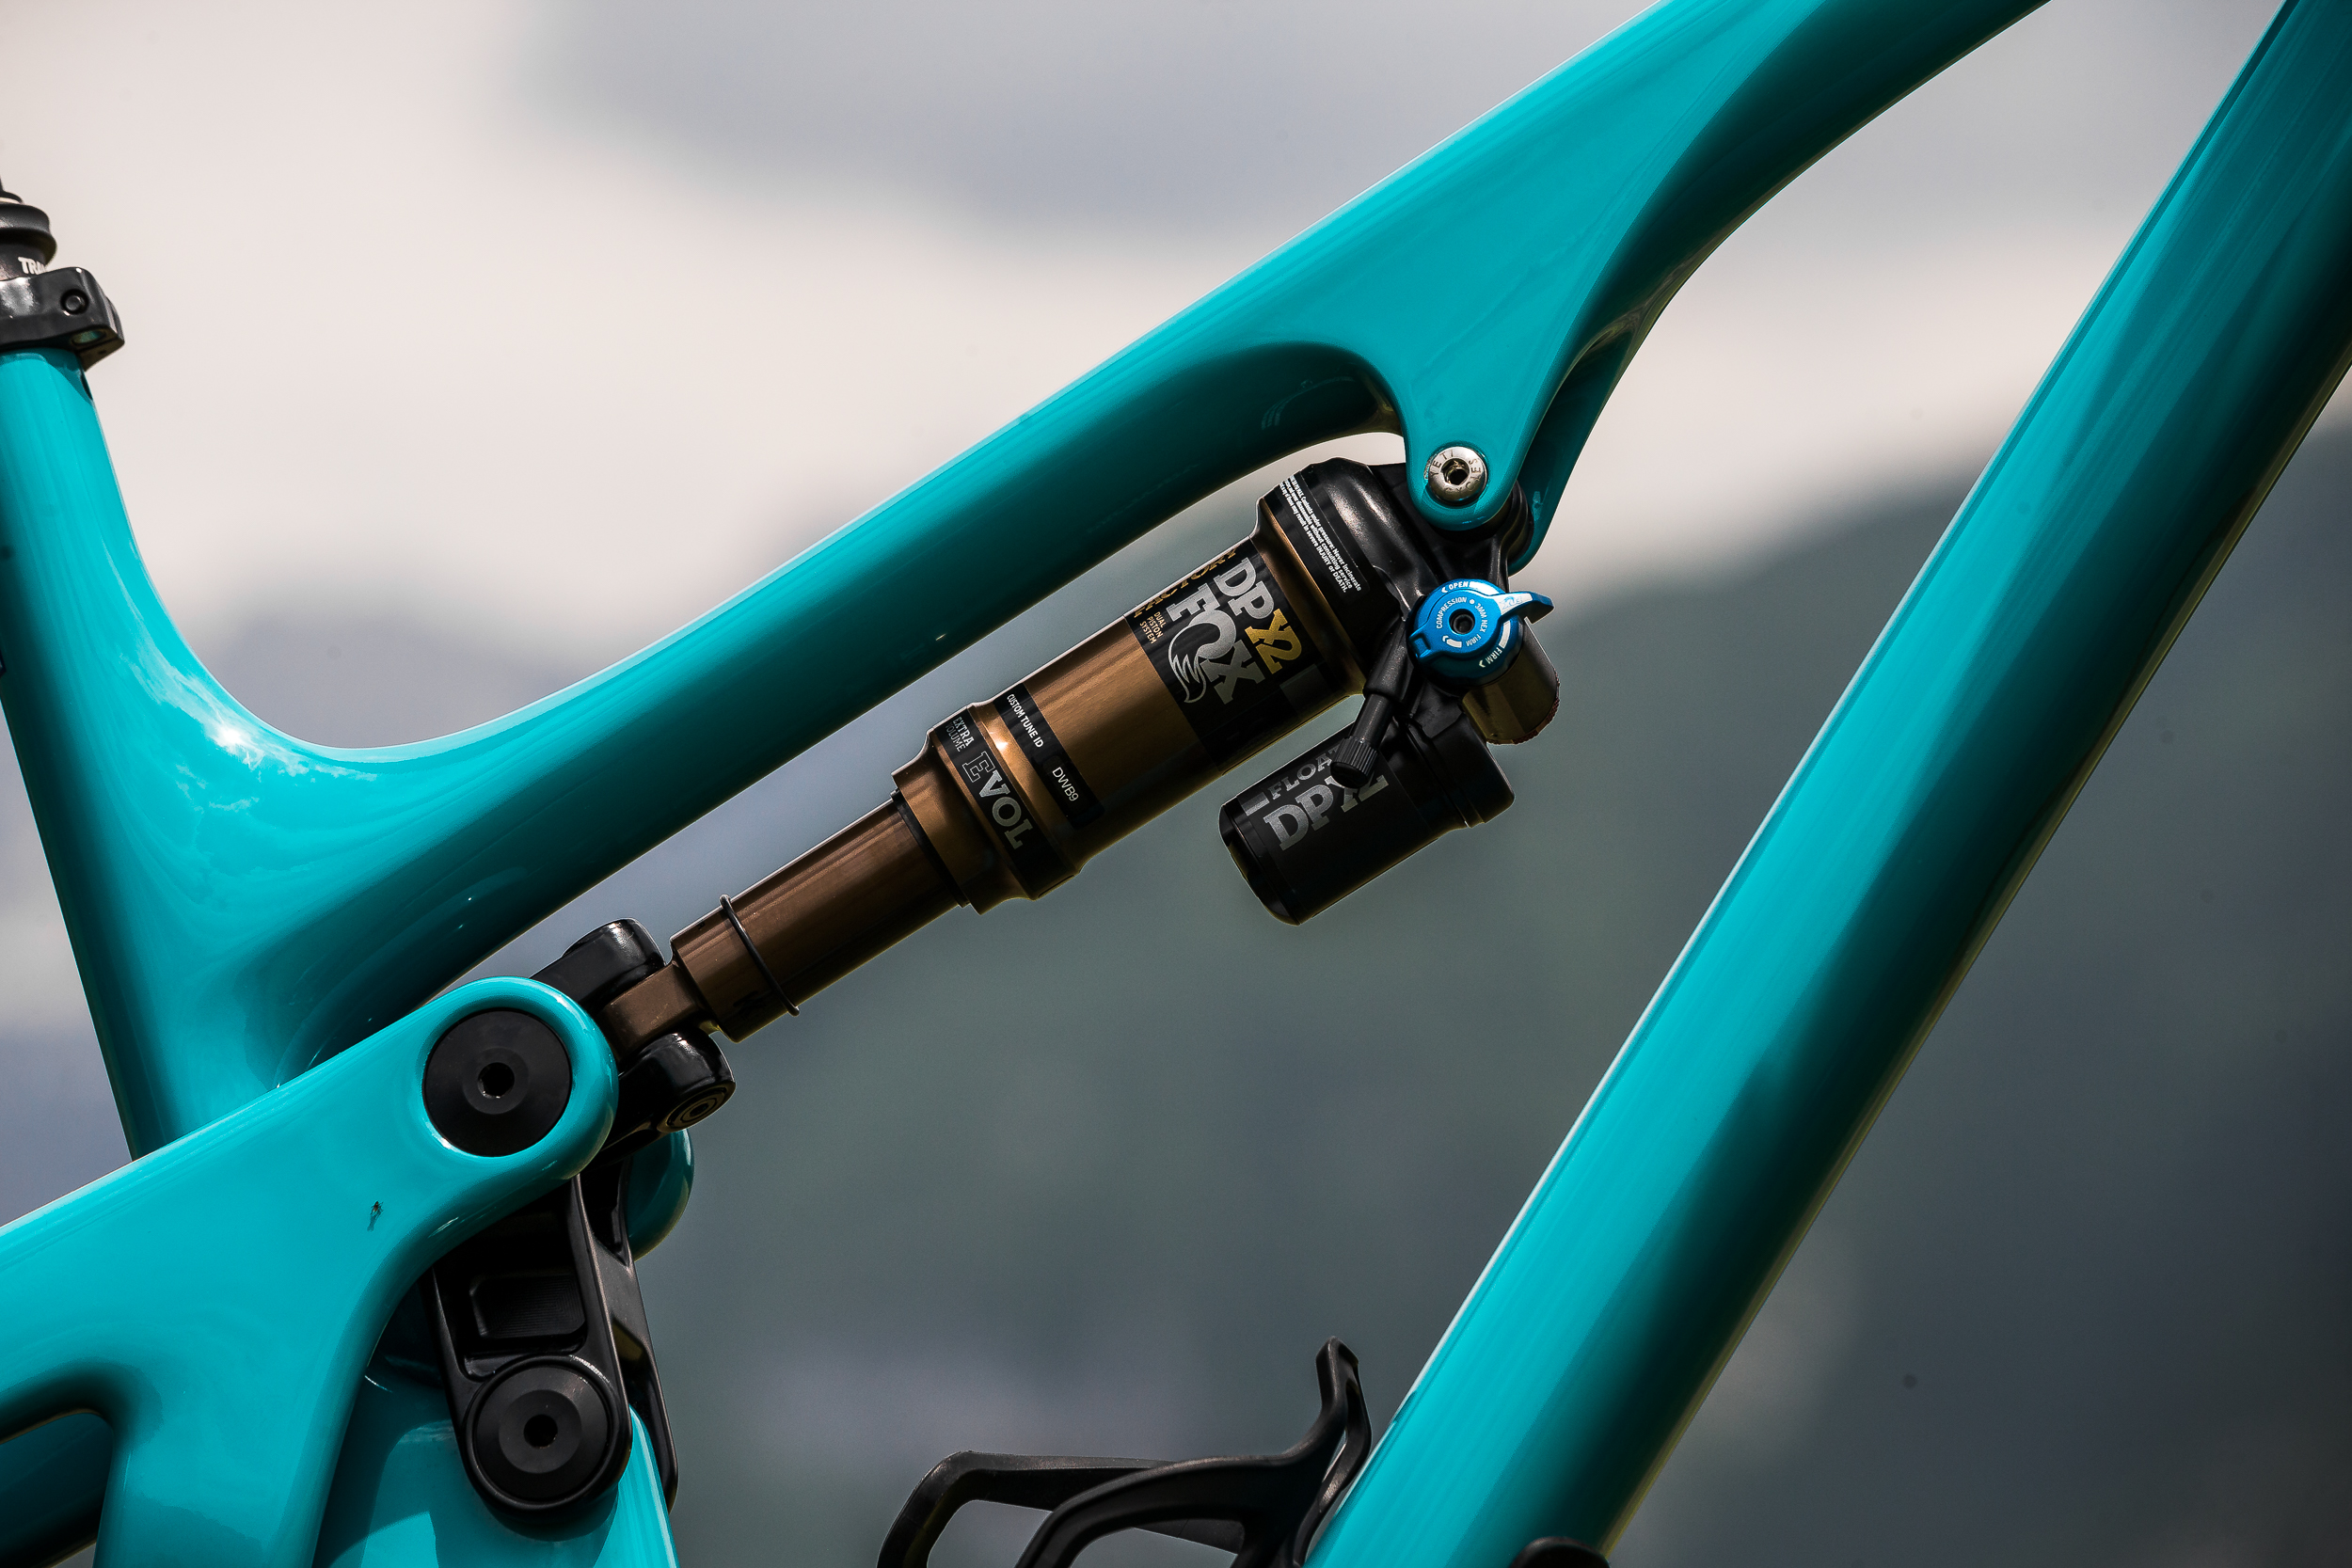 Yeti increased the suspensions leverage ratio helping maintain sensitivity in the initial part of the travel, but then ramping up at the end to prevent bottoming out on bigger hits.